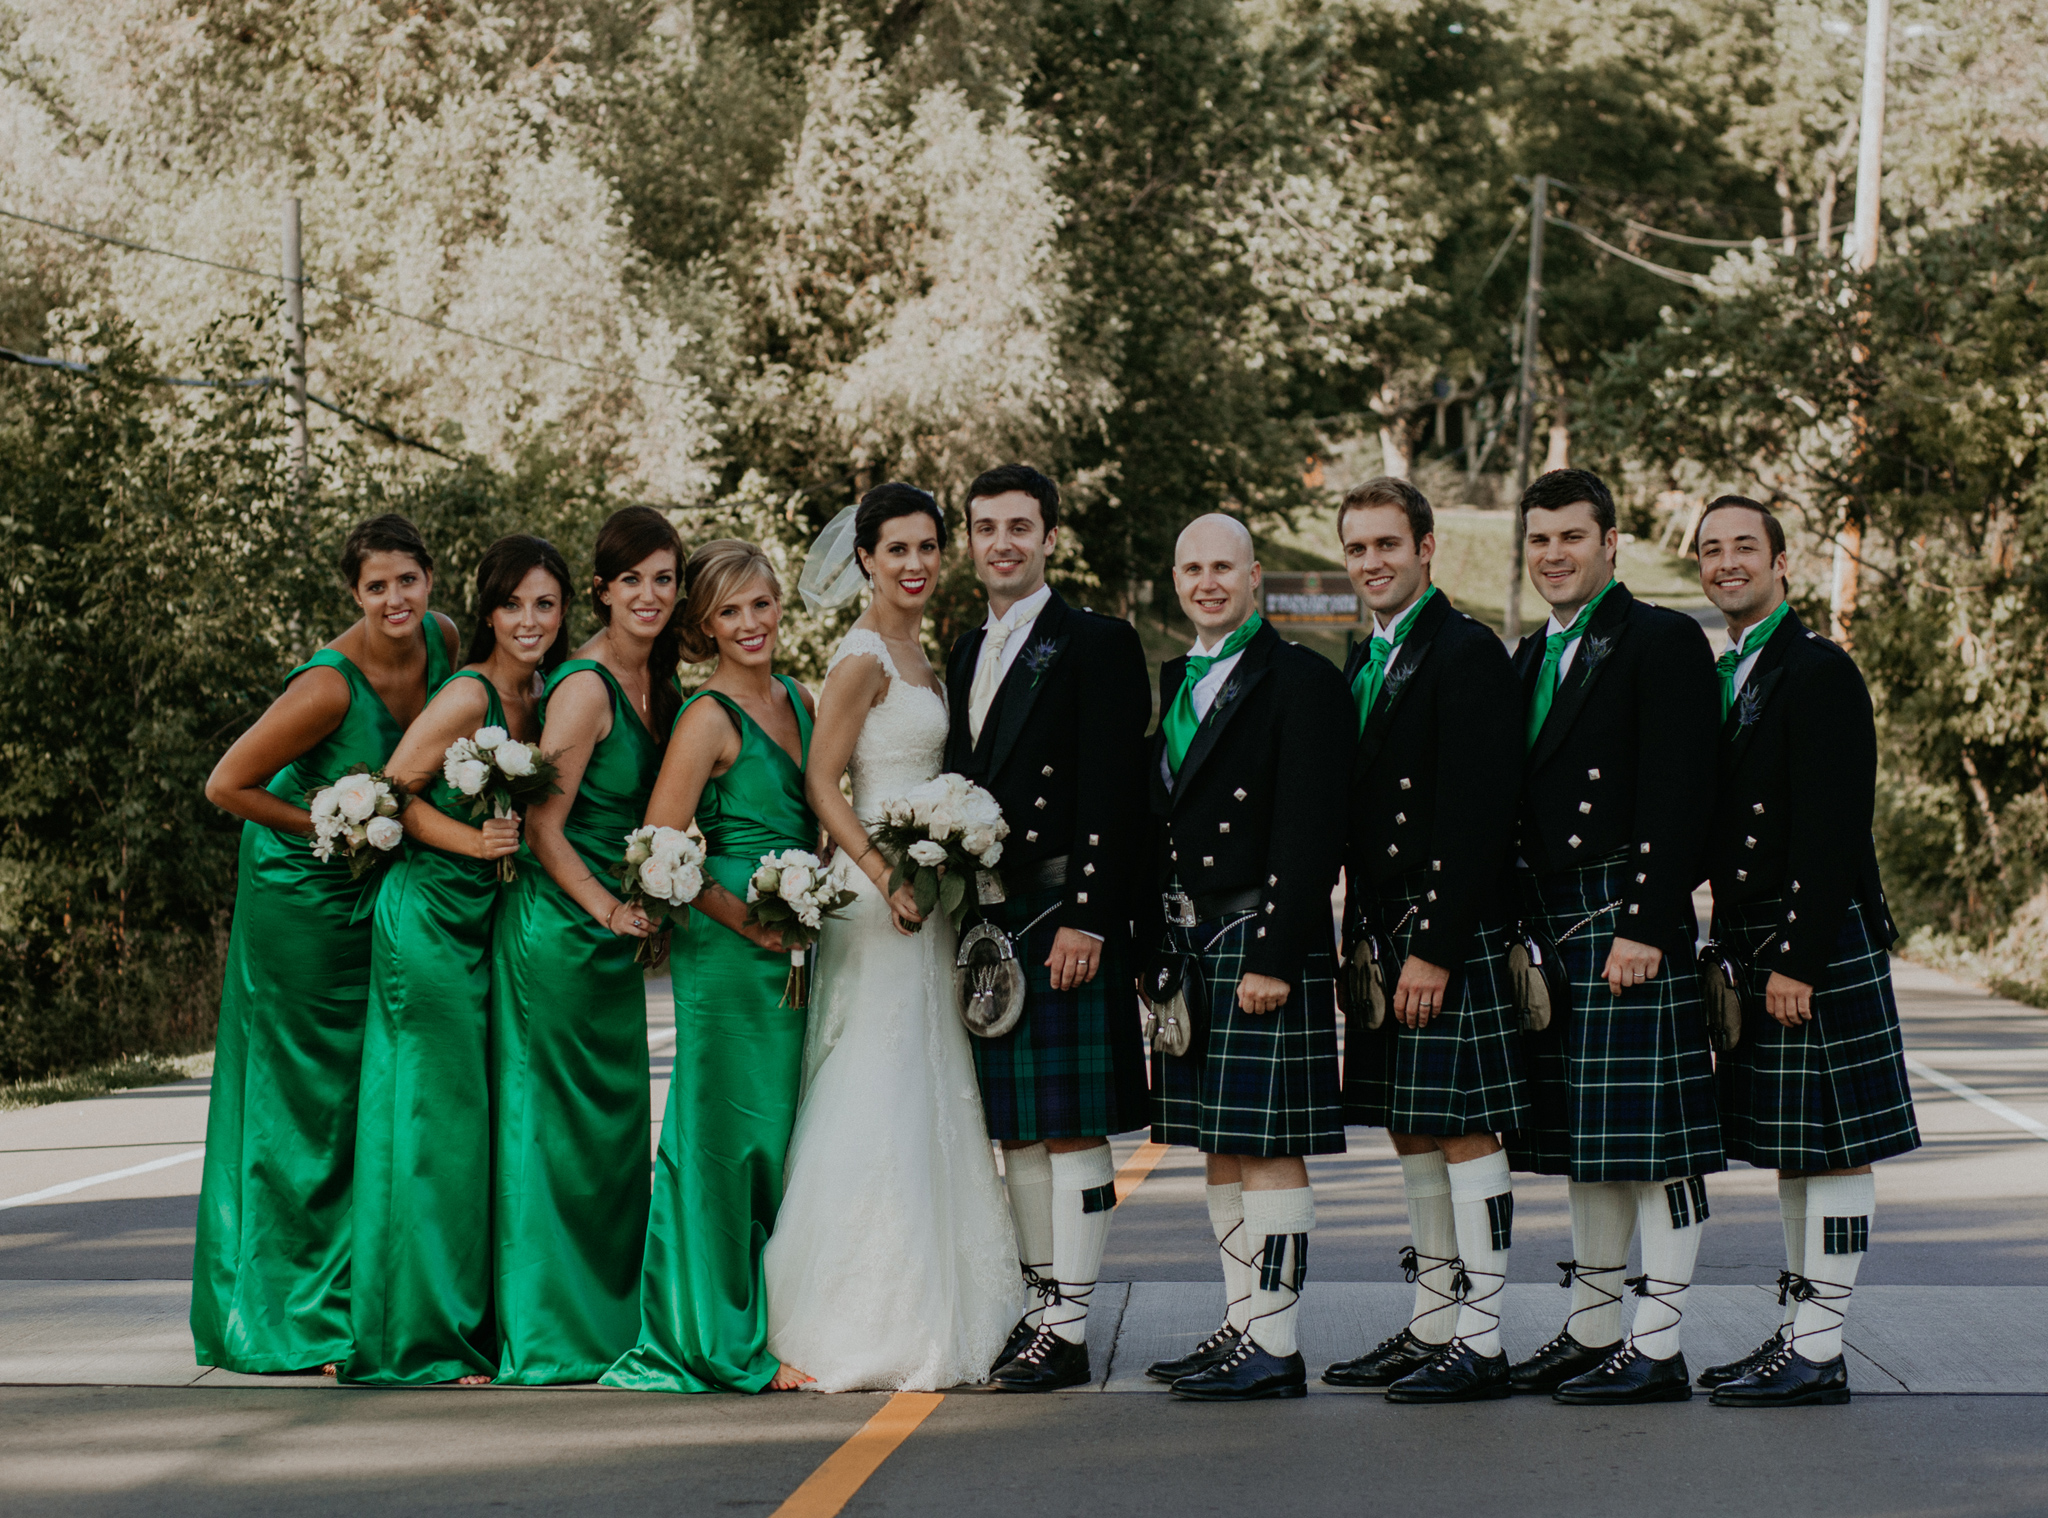 portrait of wedding party in kilts and green dresses posing in street